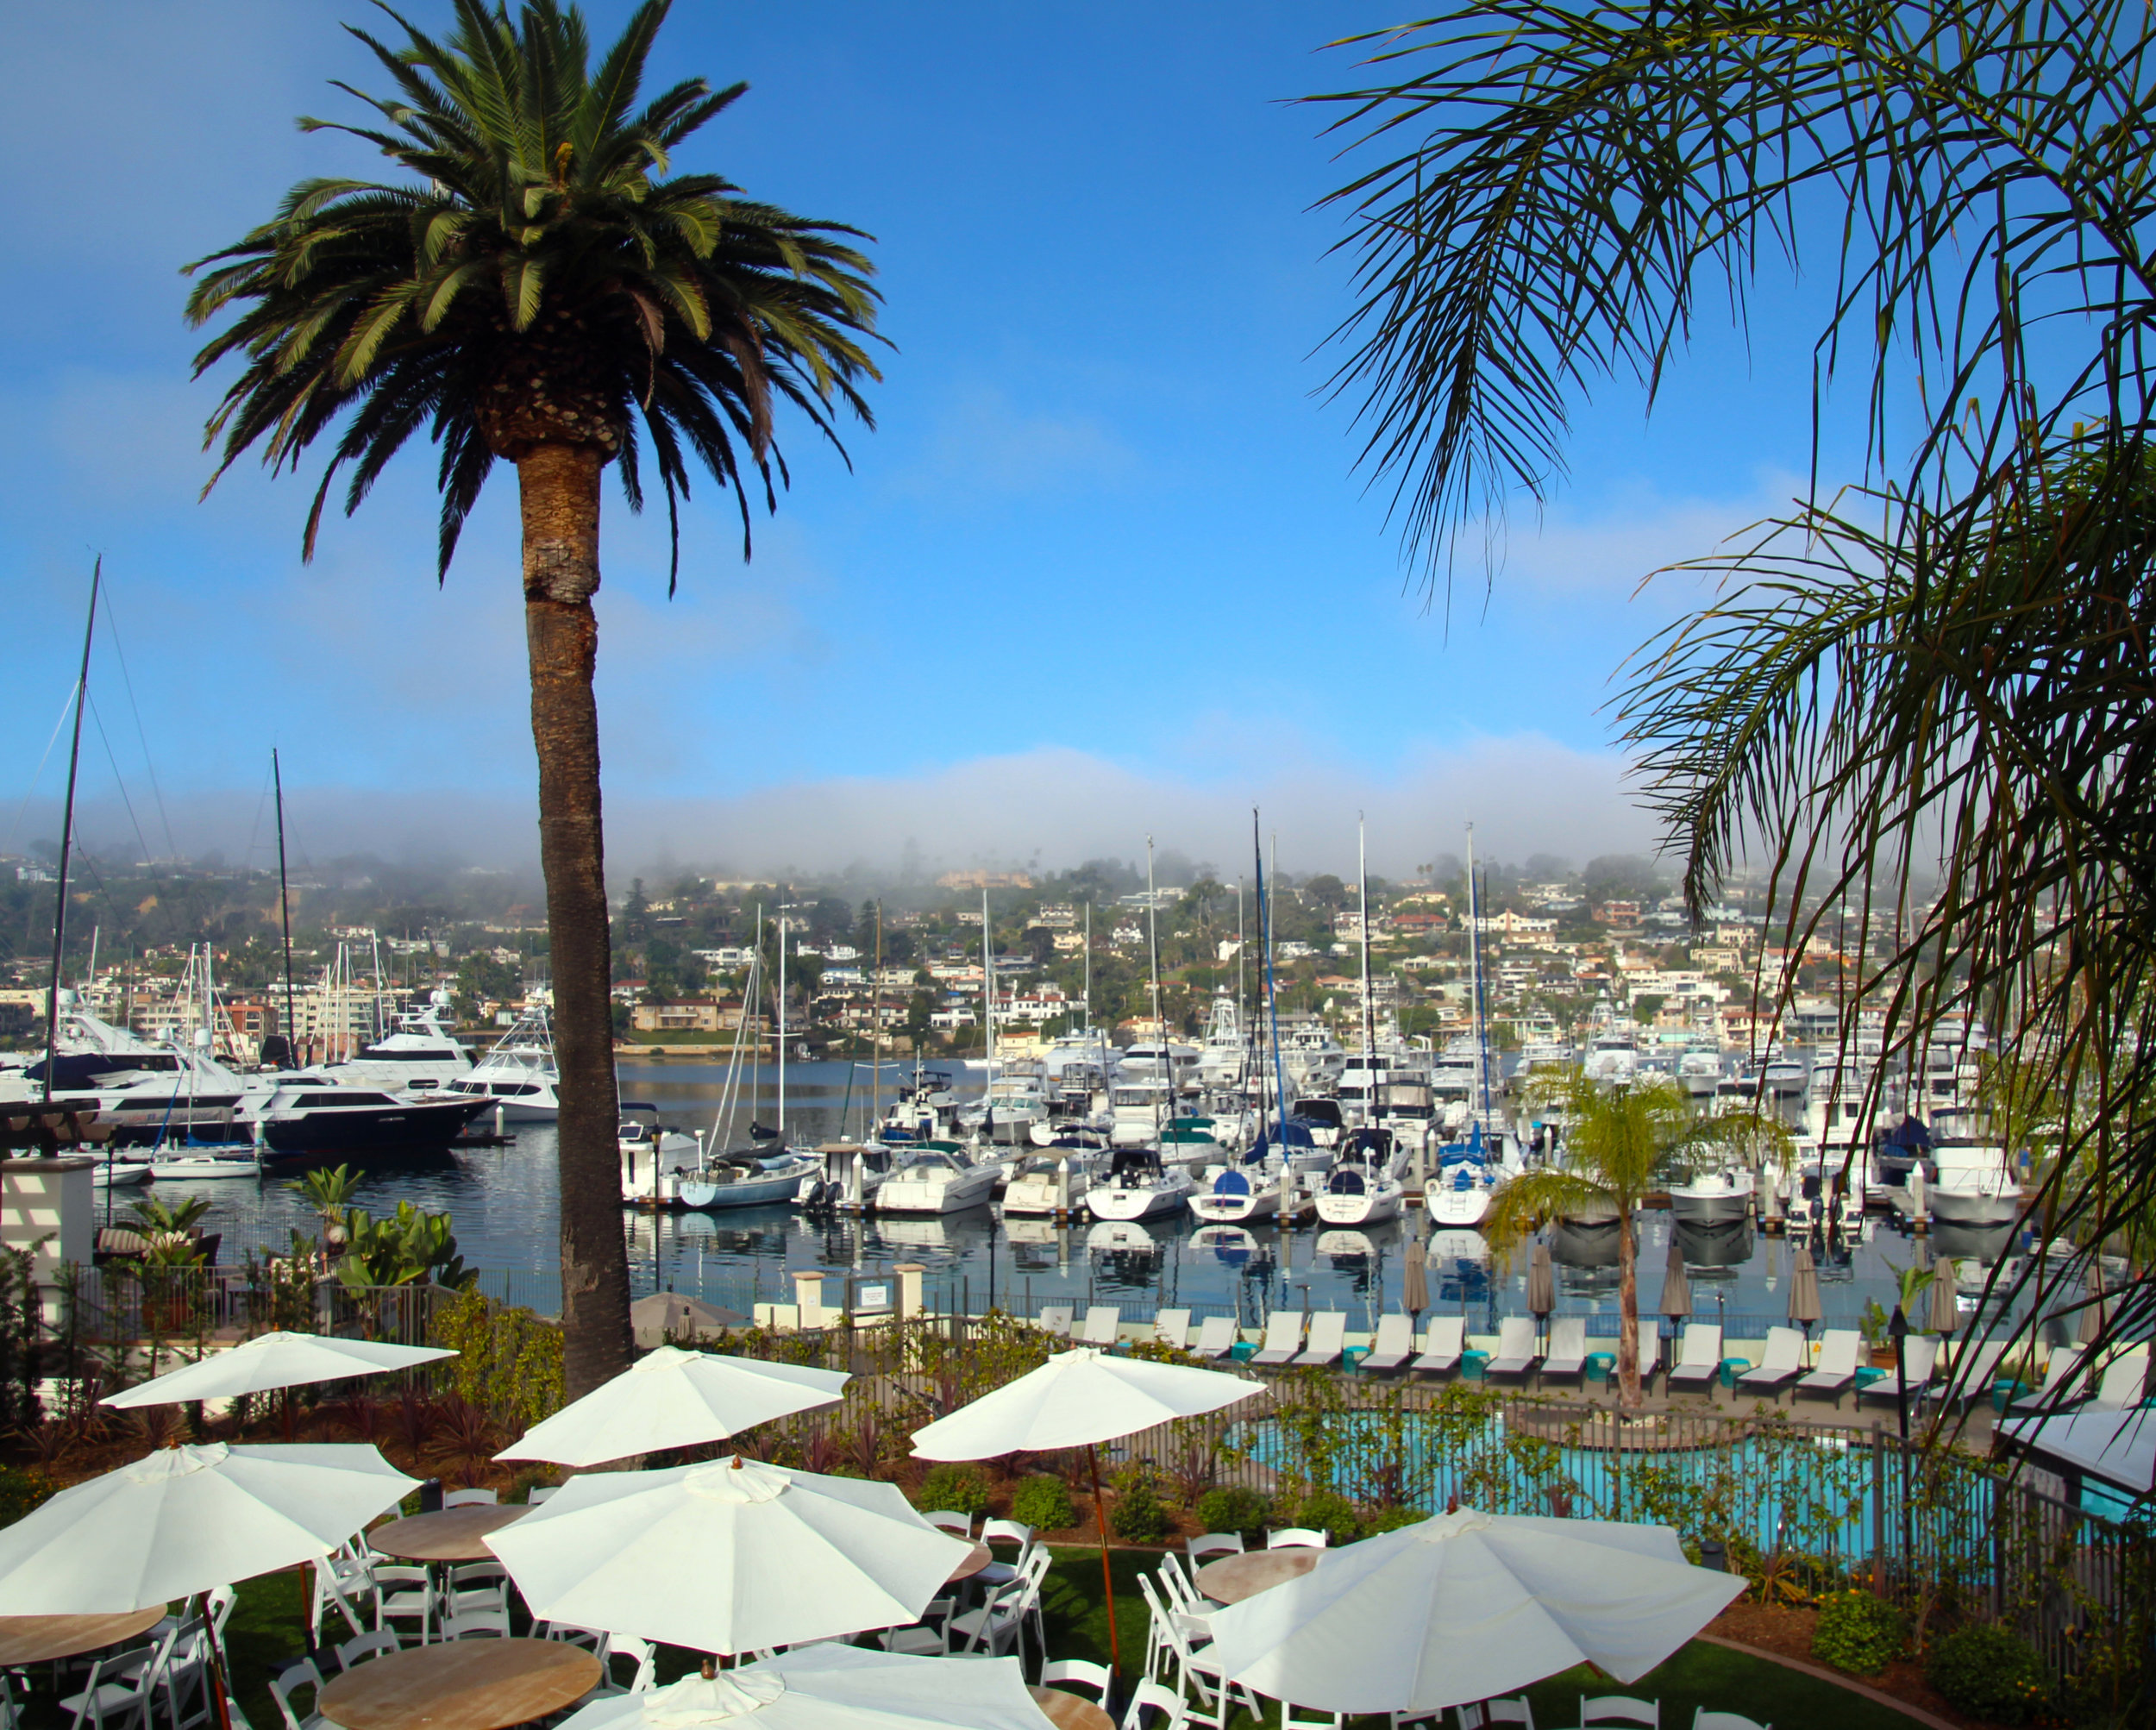 View on the marina from our suite's balcony. © Joanne DiBona Photography